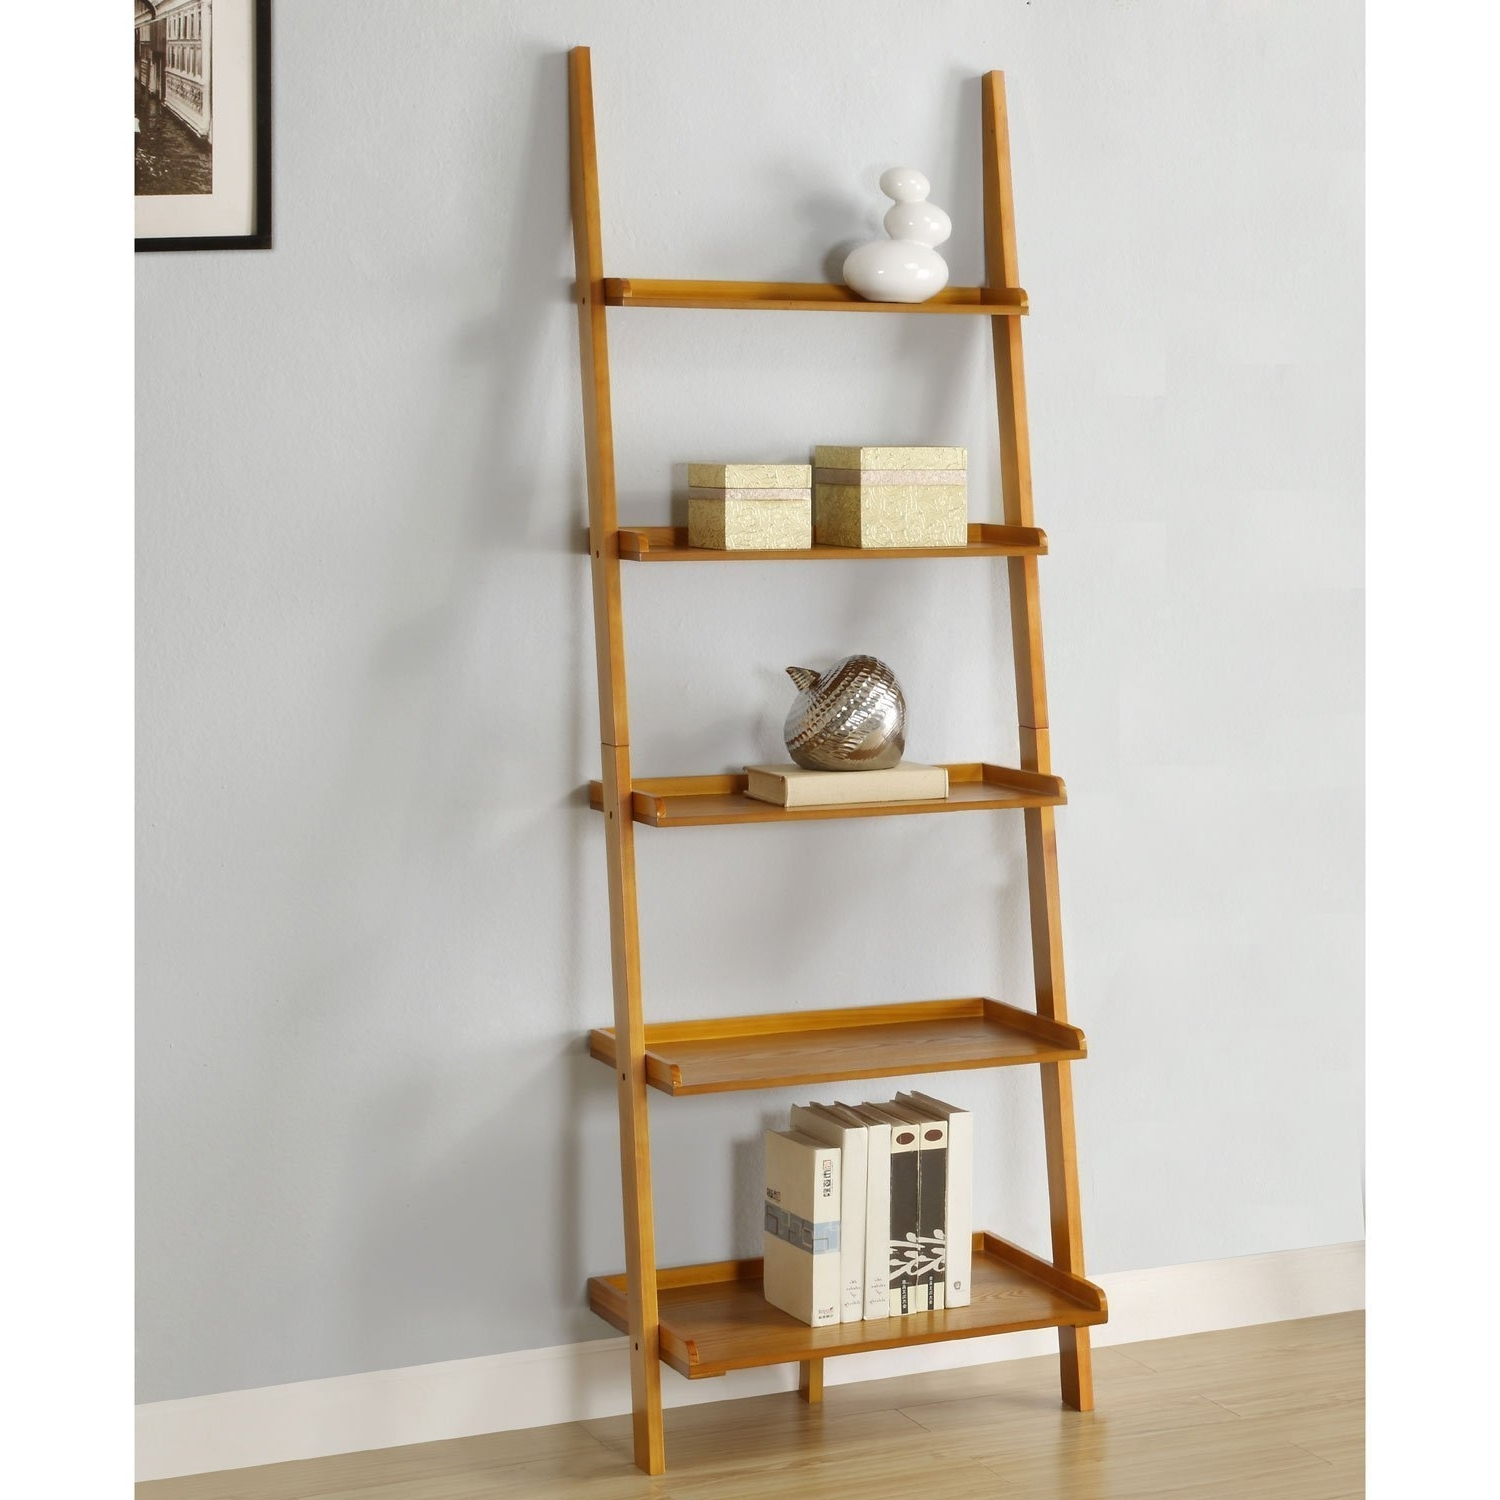 Leaning Bookcases Regarding Latest Amazon: Mintra Oak Finish 5 Tier Ladder Book Shelf: Kitchen (View 2 of 15)